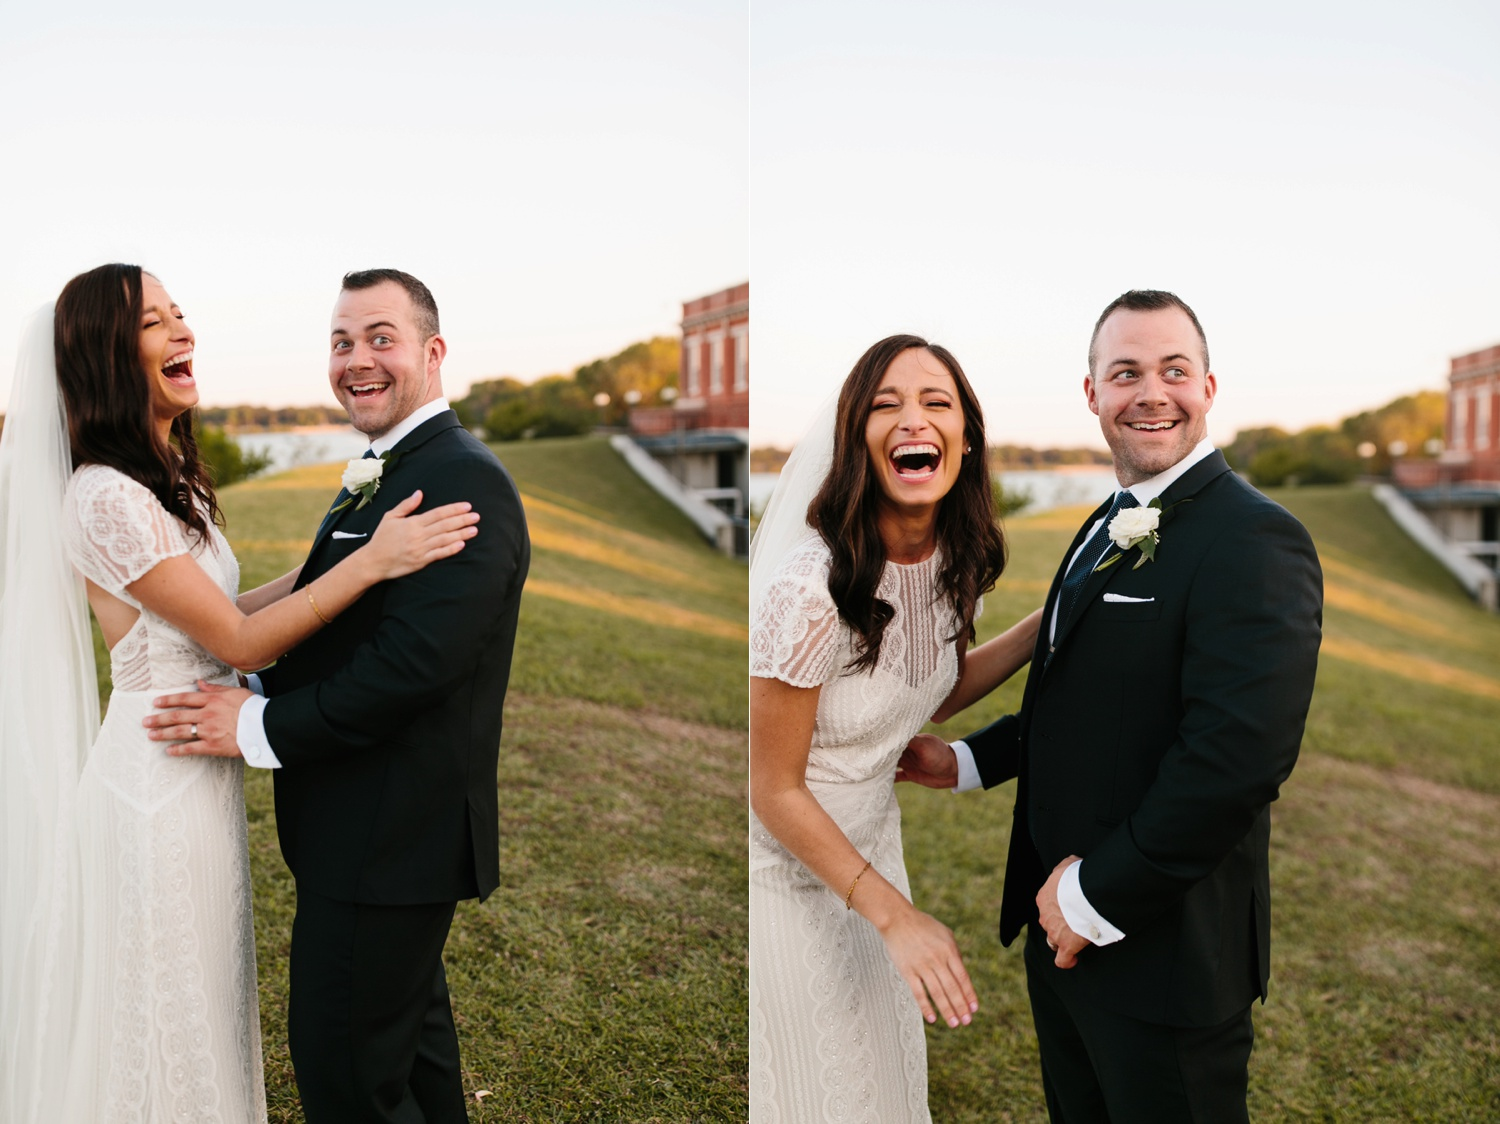 Kadee + Tyler | a raw, emotional wedding at the Filter Building on White Rock Lake in Dallas, TX by North Texas Wedding Photographer, Rachel Meagan Photography 171